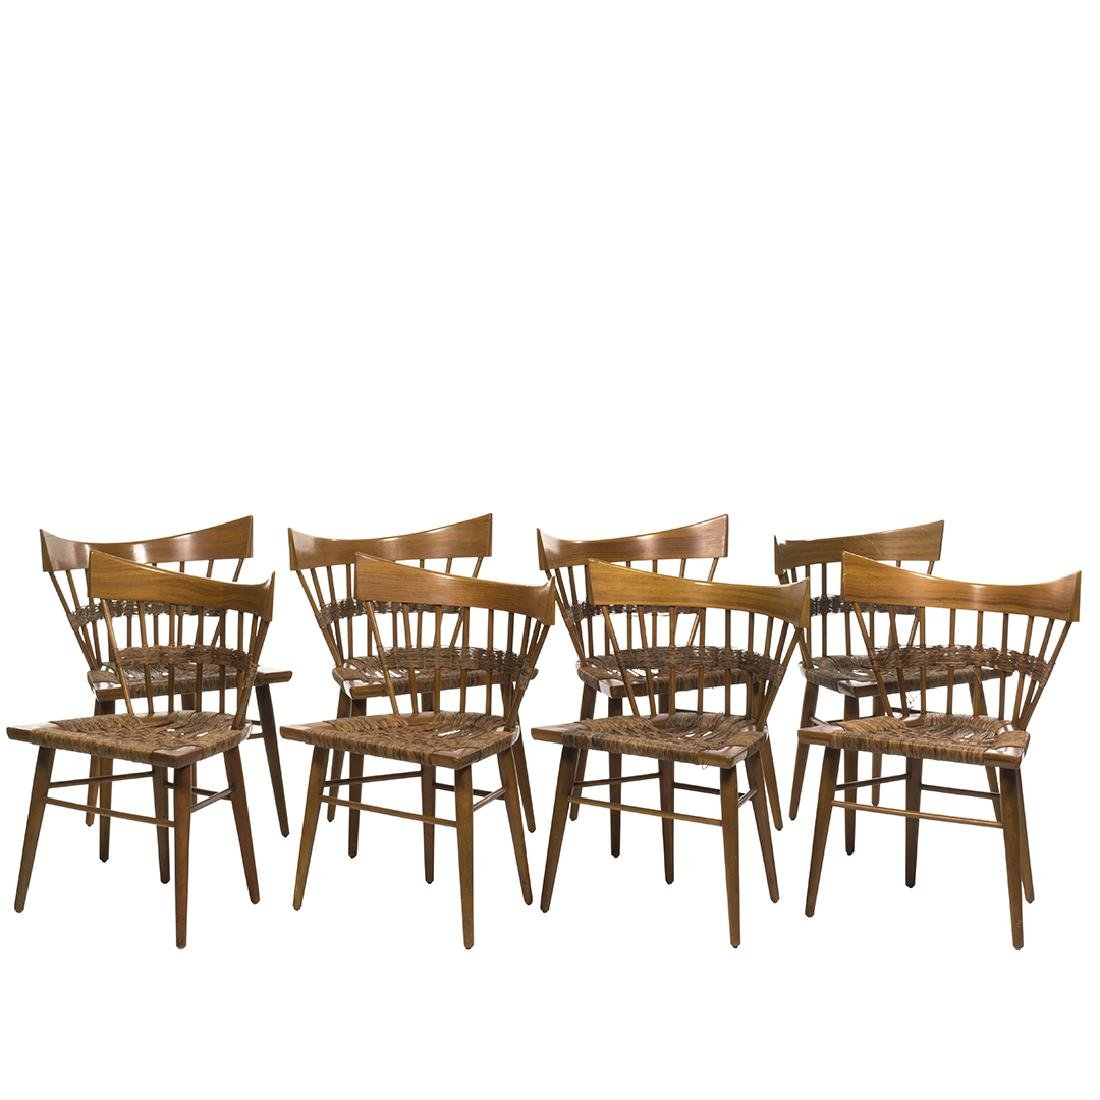 Edmund Spence Dining Chairs (8)